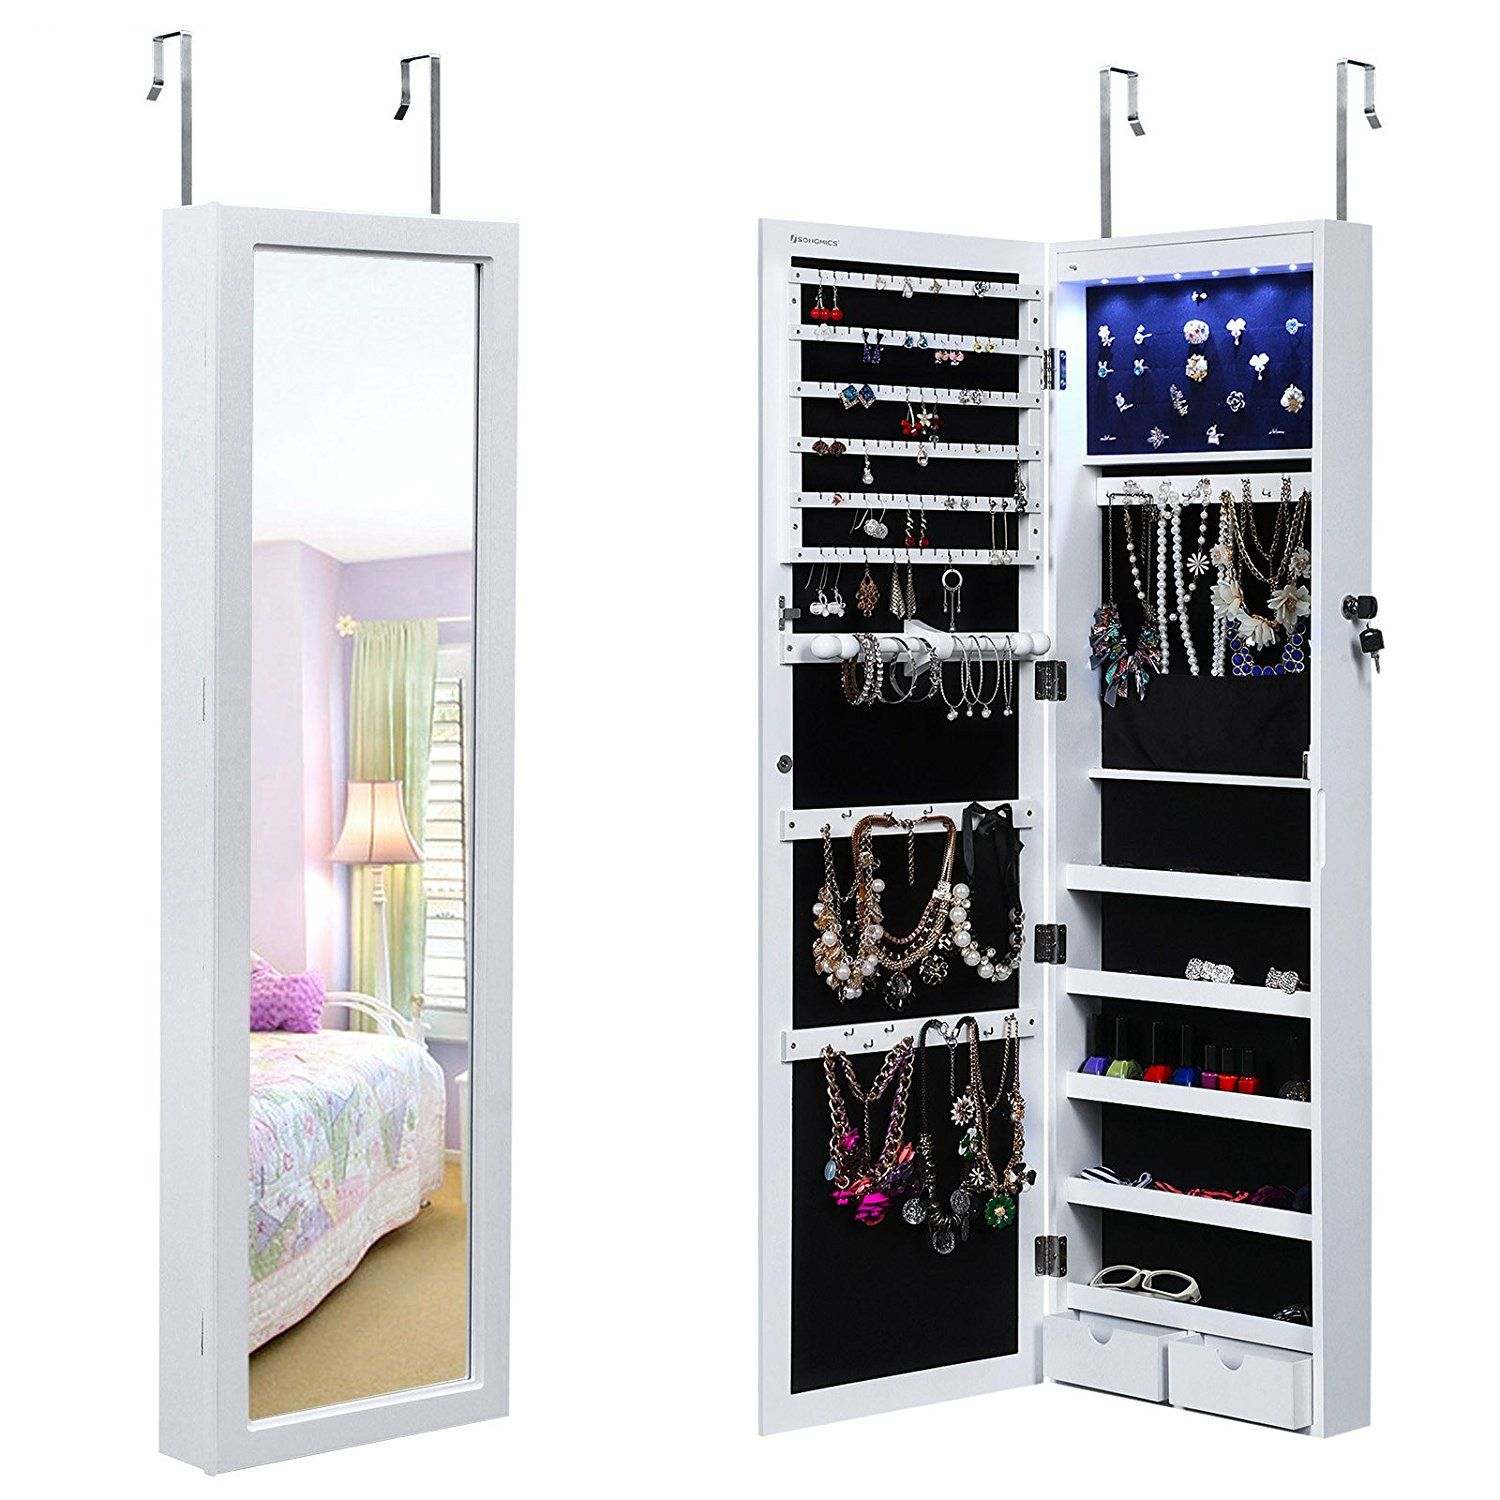 Amazon.com: SONGMICS Lockable Jewelry Cabinet Wall Door Mounted Jewelry Armoire Organizer with Mirror LED Light, White: Home & Kitchen